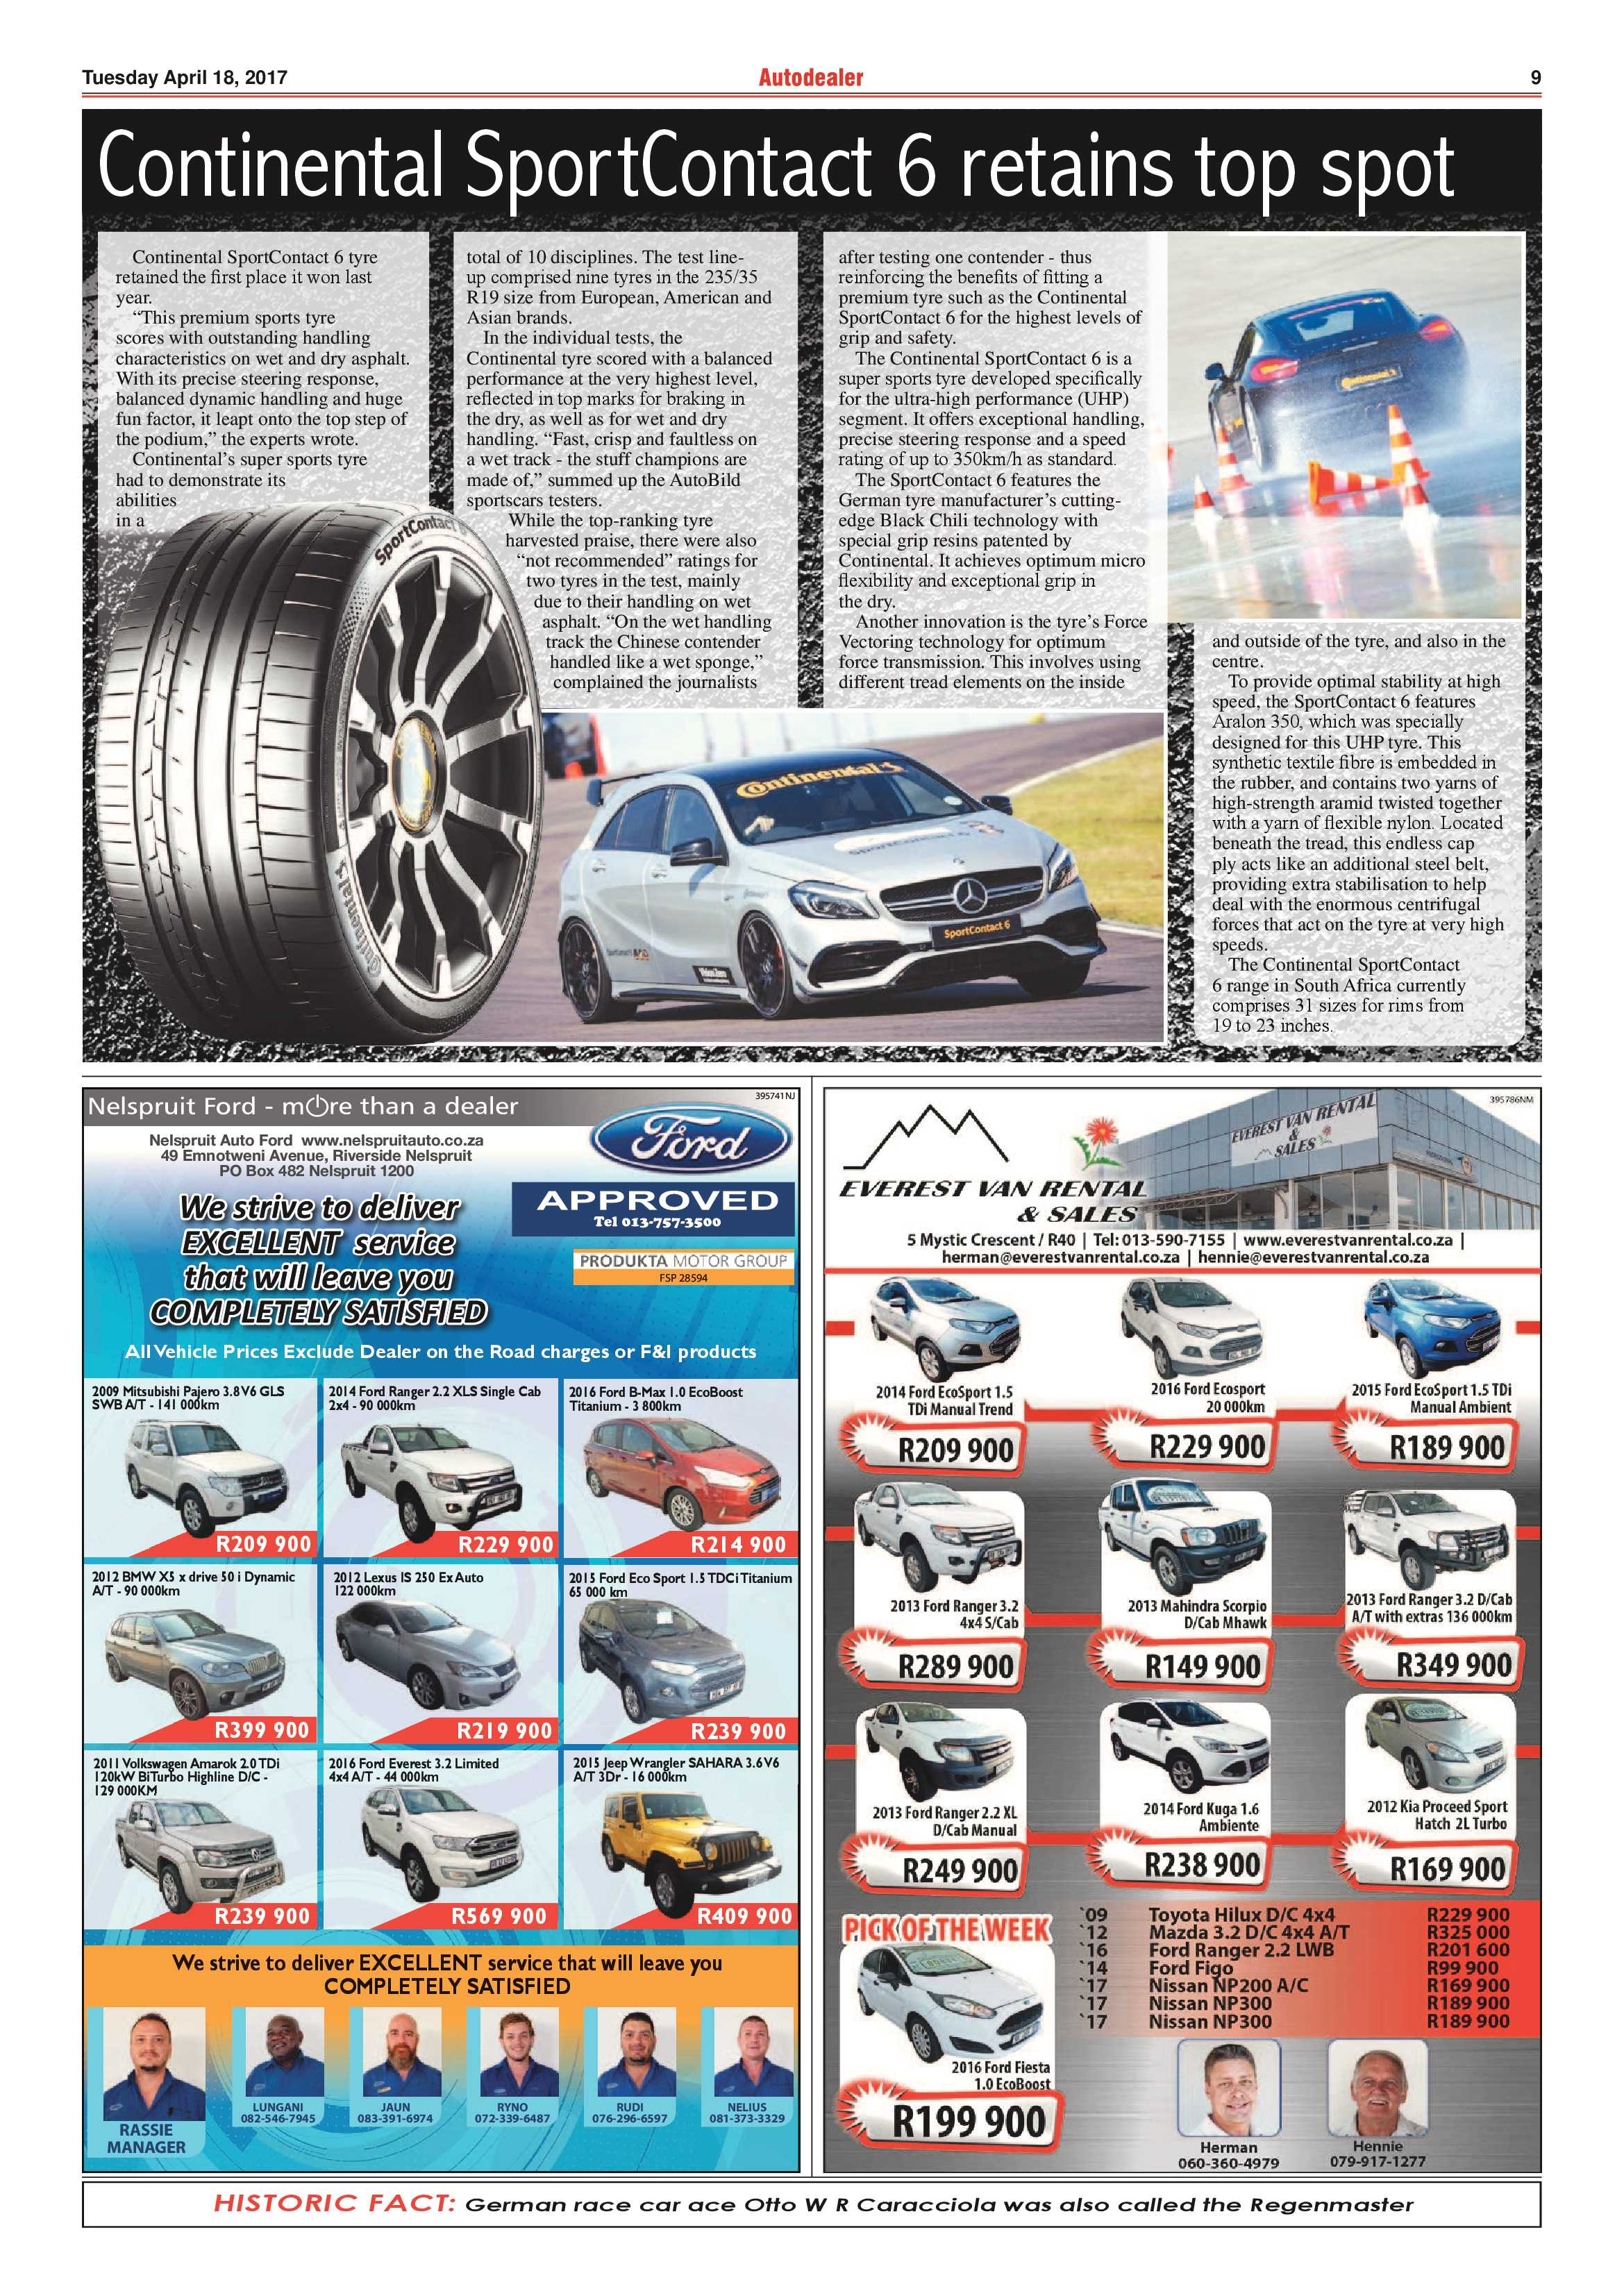 autodealer-18-april-2017-epapers-page-9